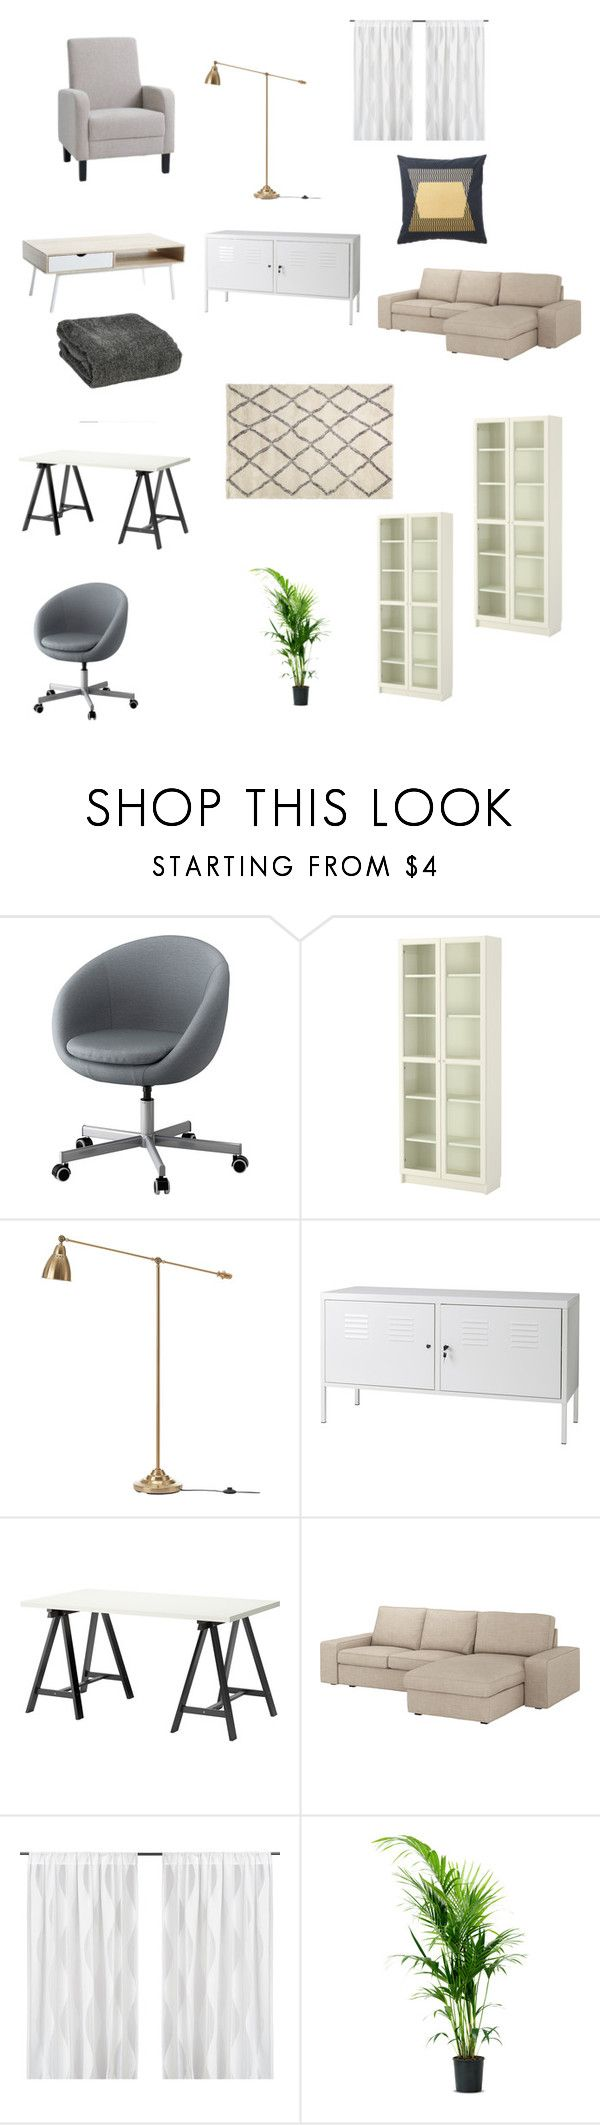 """living room"" by spimonique on Polyvore featuring interior, interiors, interior design, home, home decor, interior decorating and living room"